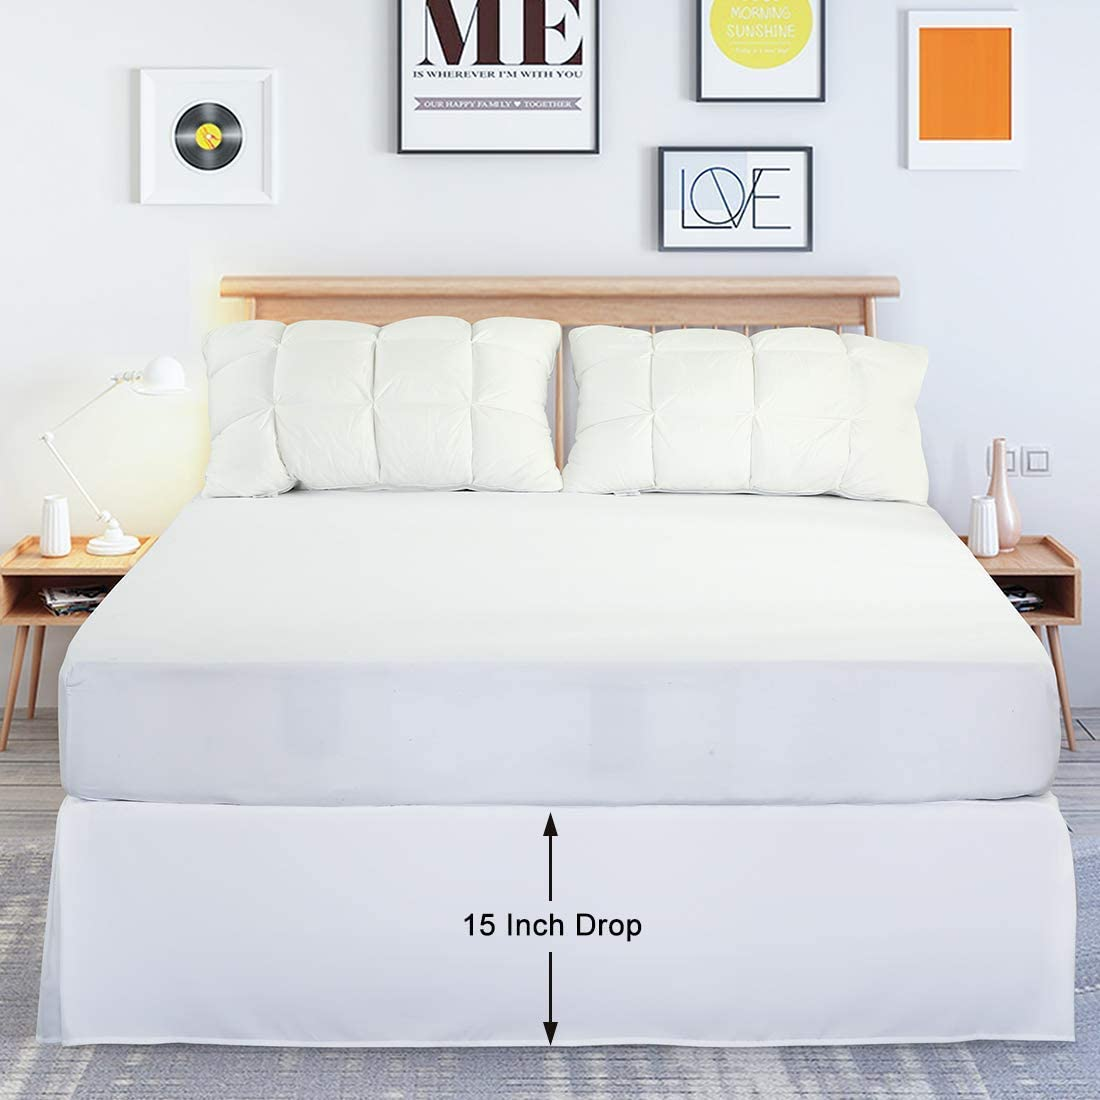 Dark Grey, Queen Hotel Luxury Microfiber 15 Inch Drop Ultra Soft,Wrinkle and Fade Resistant Cooldex Bedding Bed Skirt